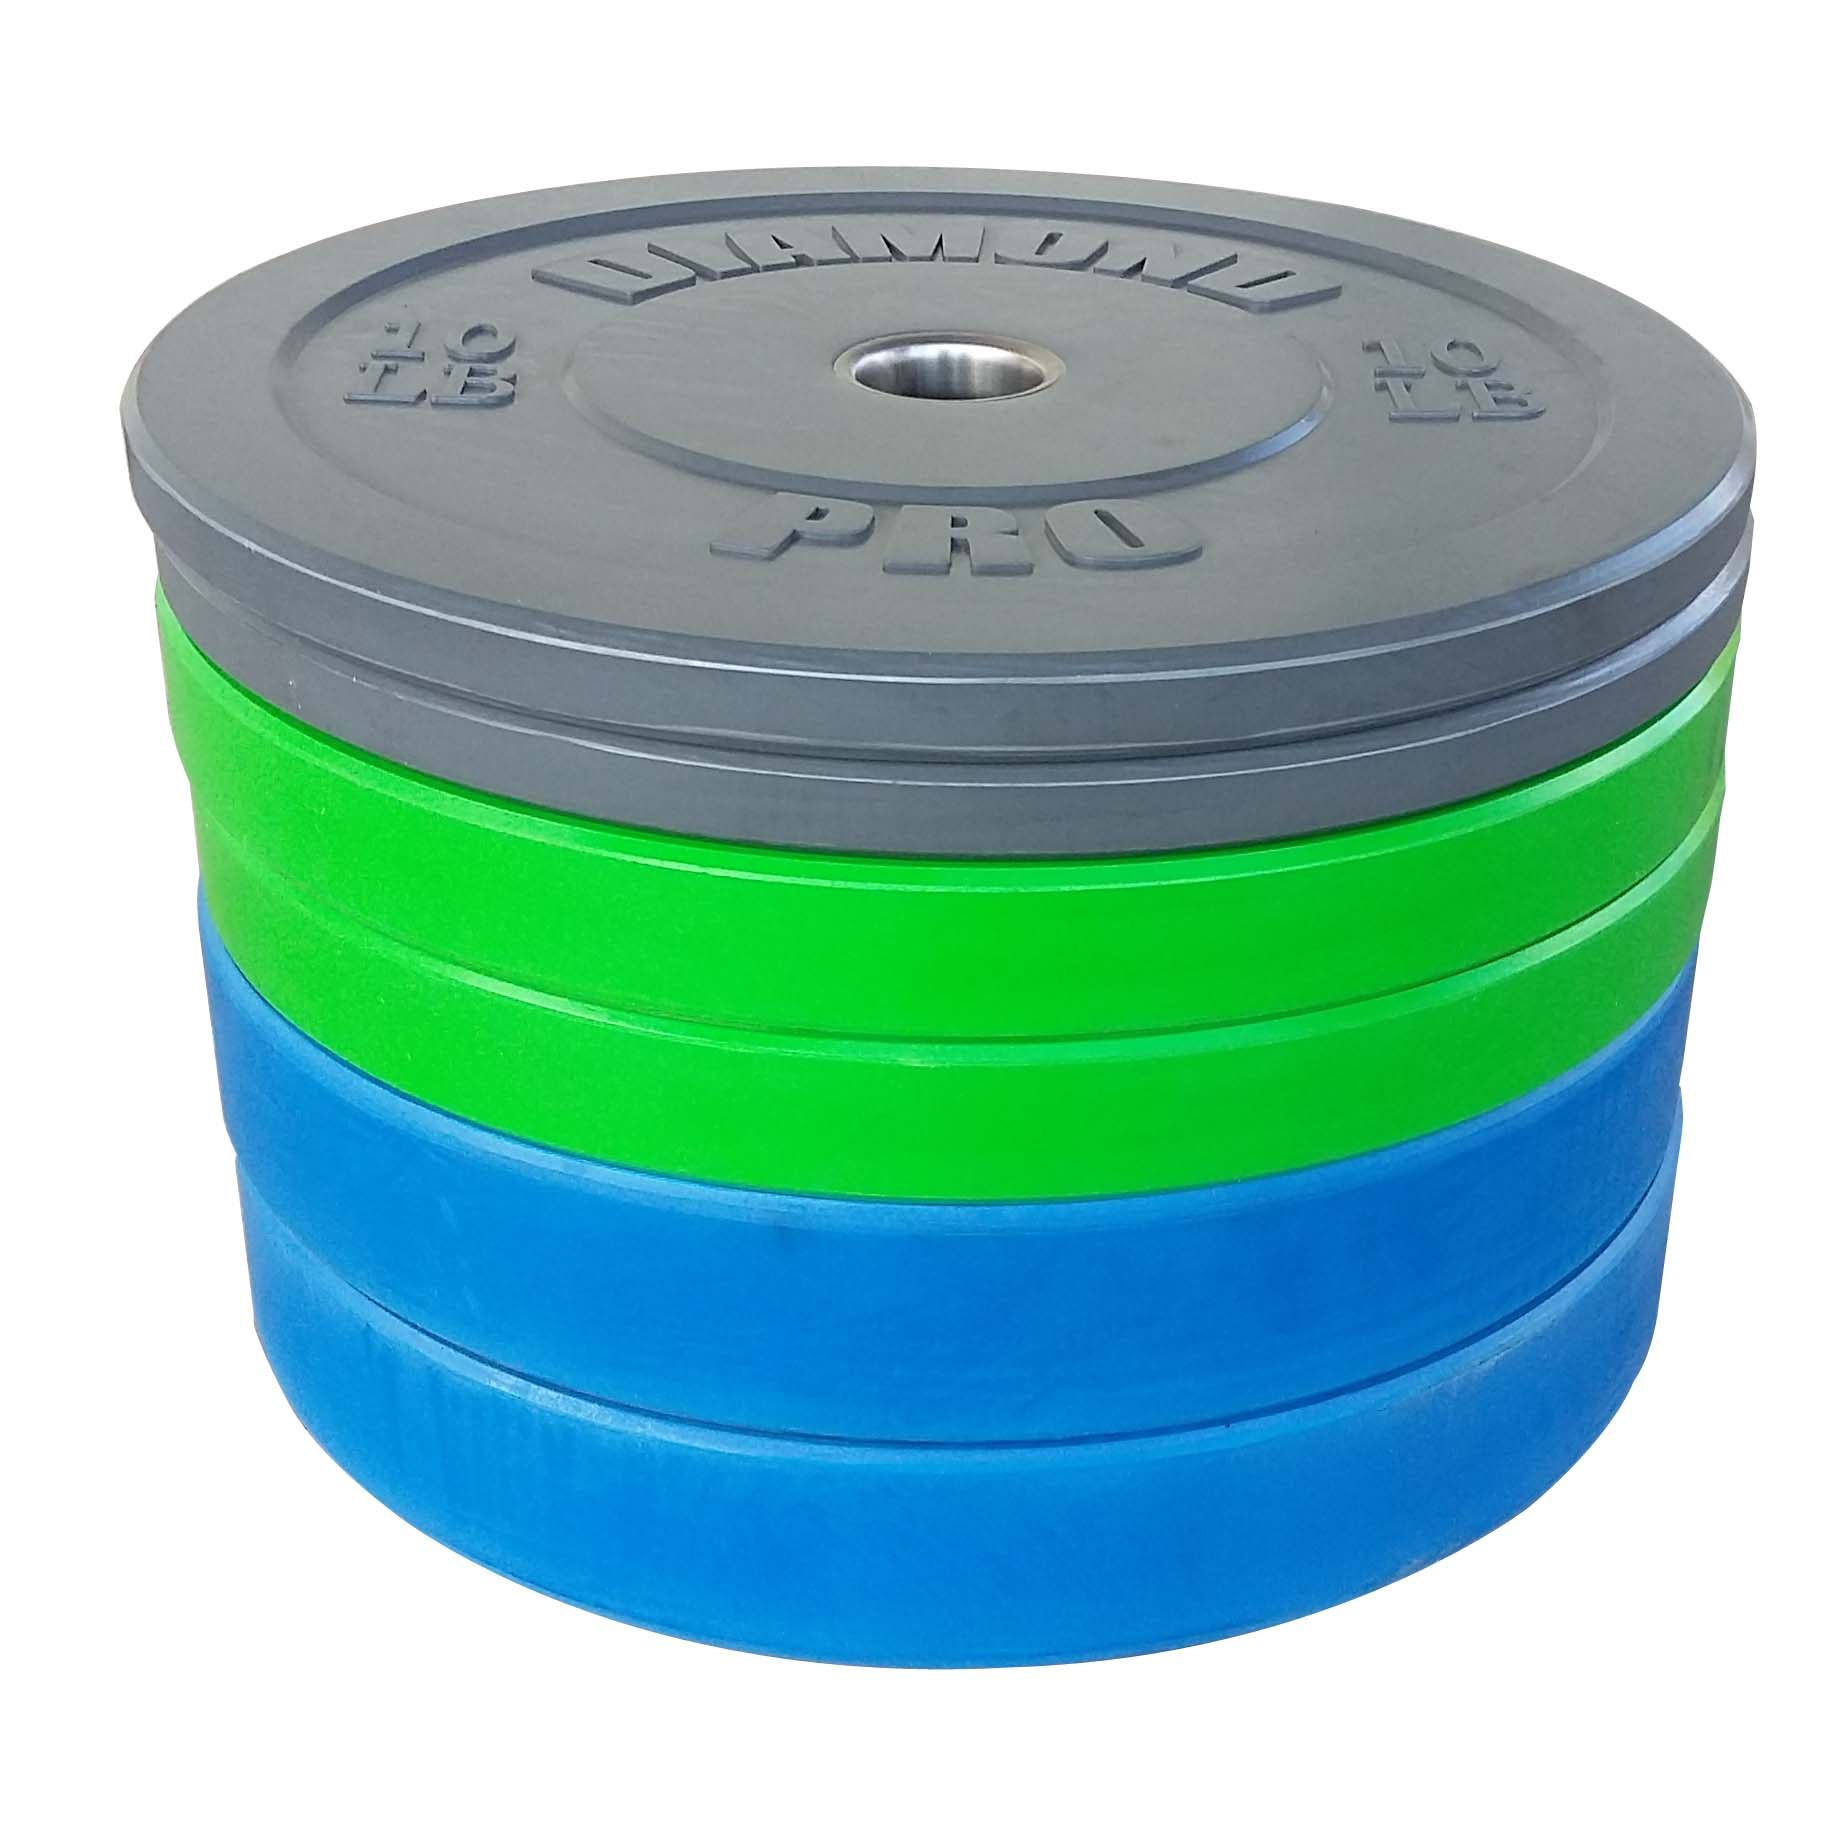 Diamond Pro 160 lb Color Bumper Plate Set